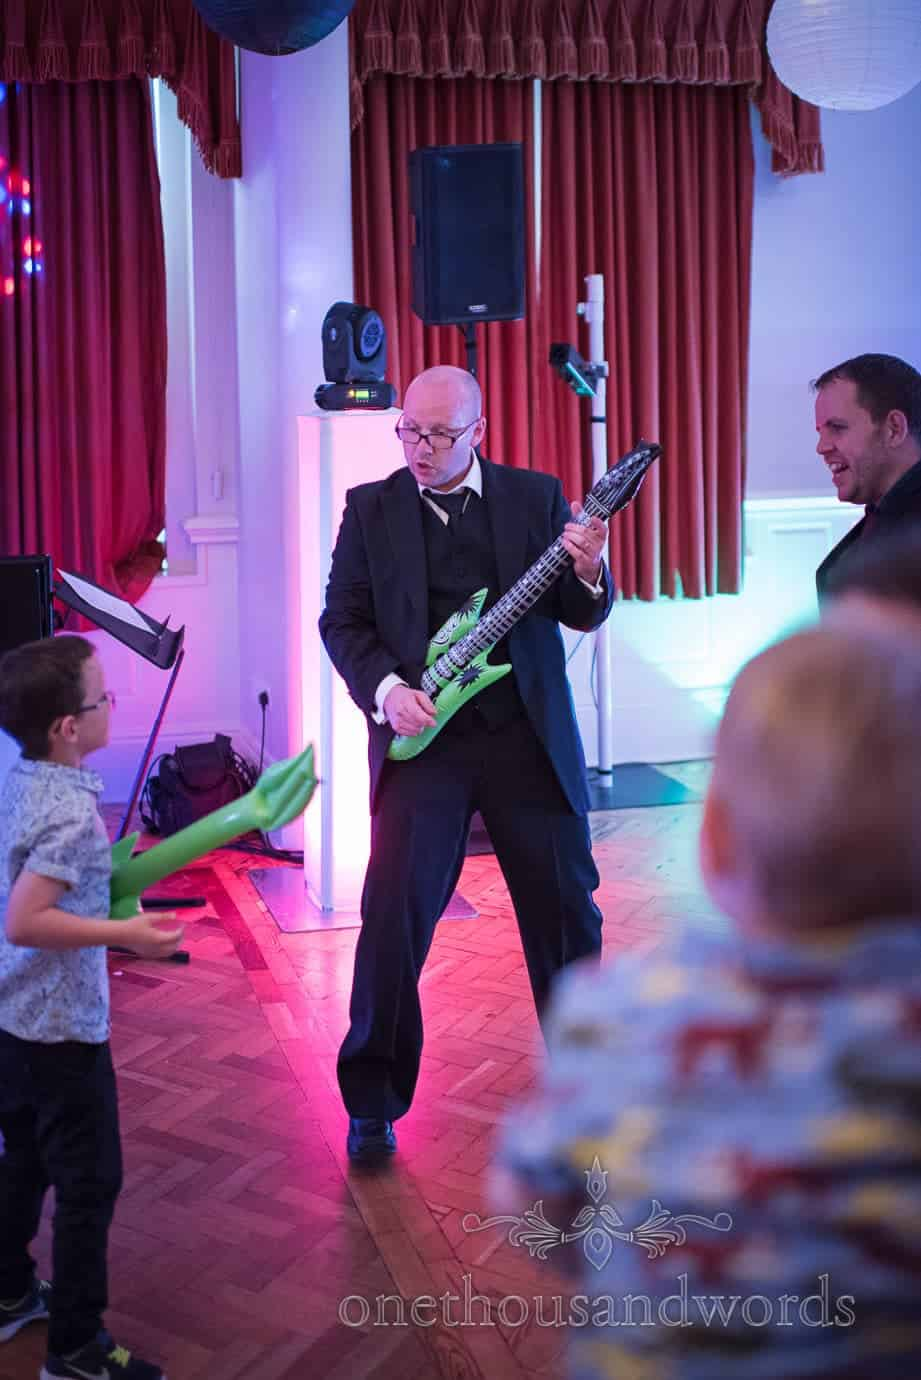 Wedding guest rocks out with inflatable guitar at Rock and Roll themed wedding